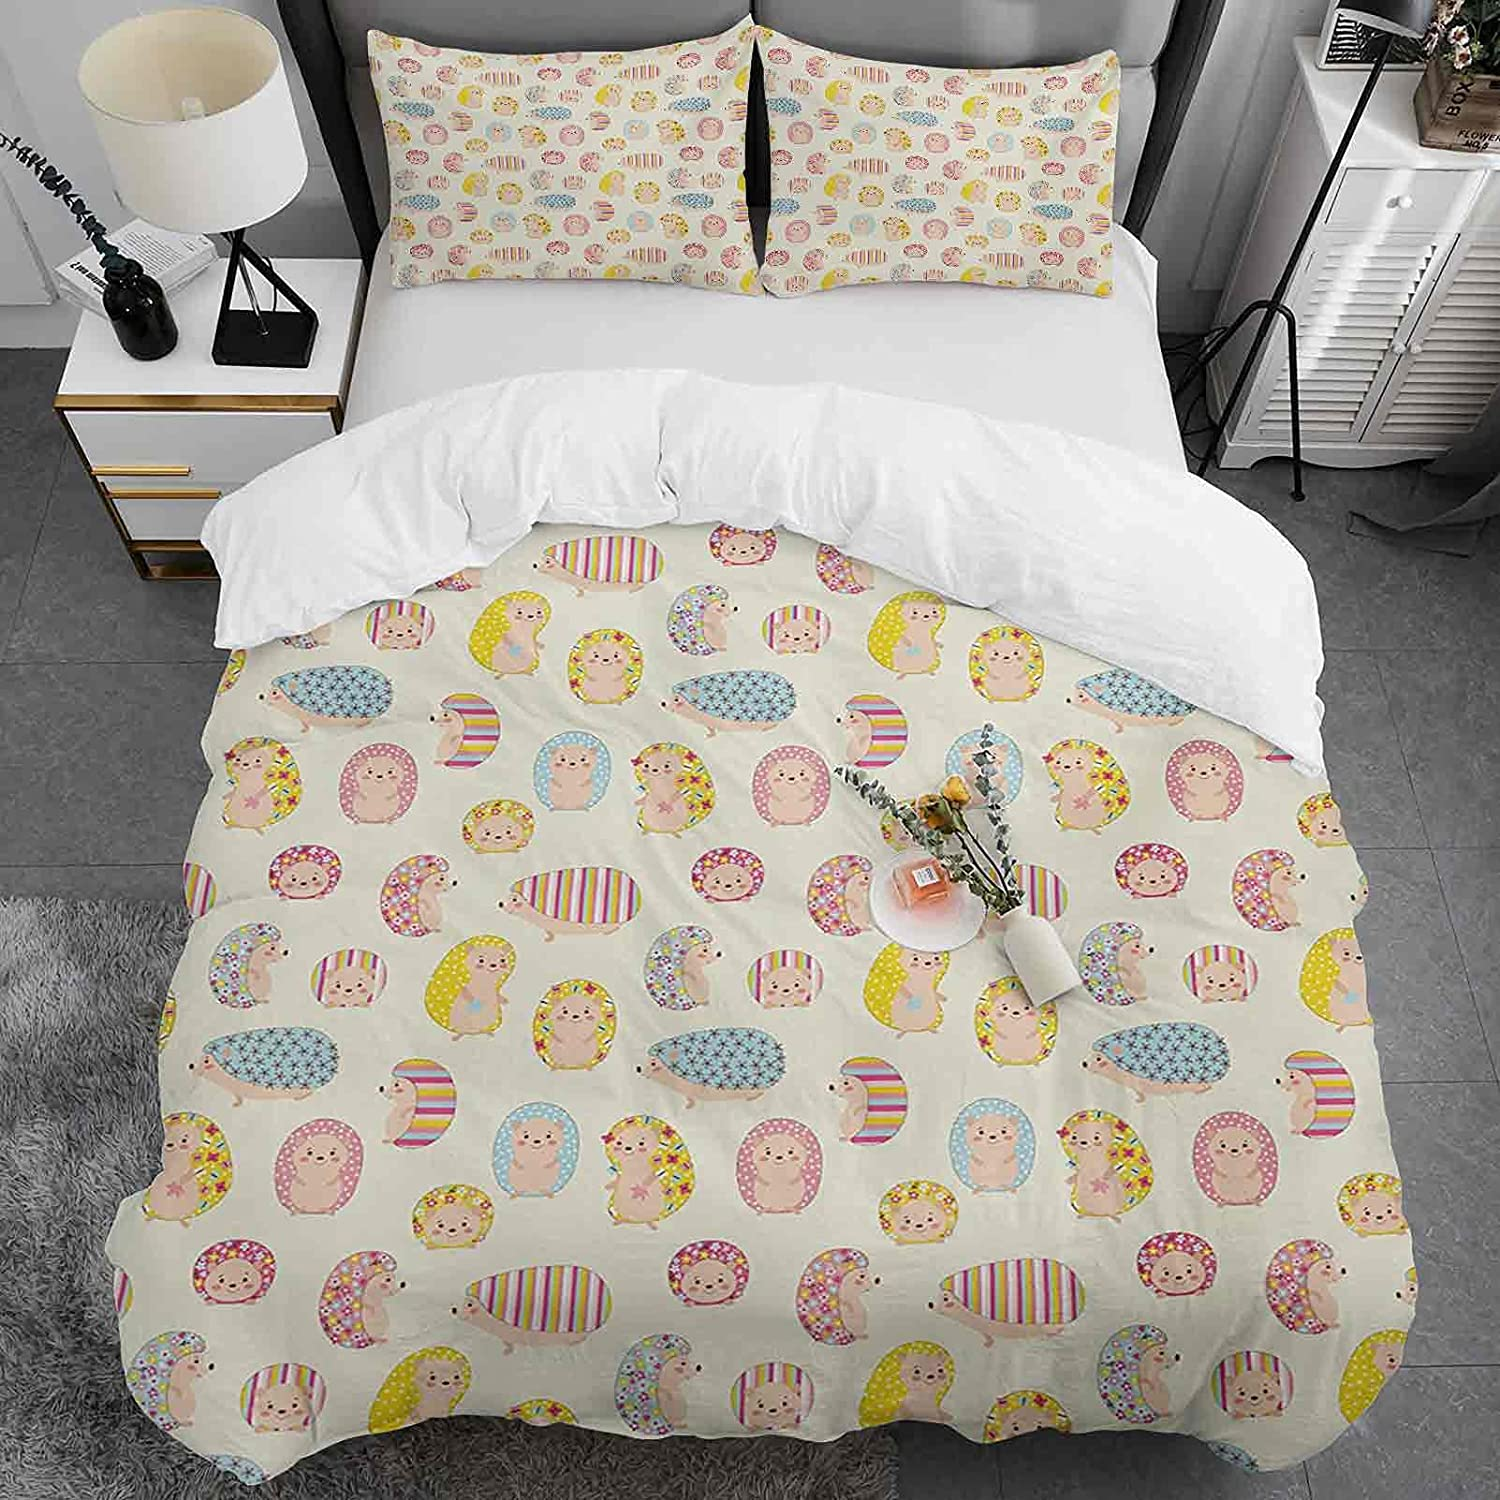 Max 42% High quality OFF Kids Duvet Cover Queen Size 100% Washed Hedgehog Cotton Pattern